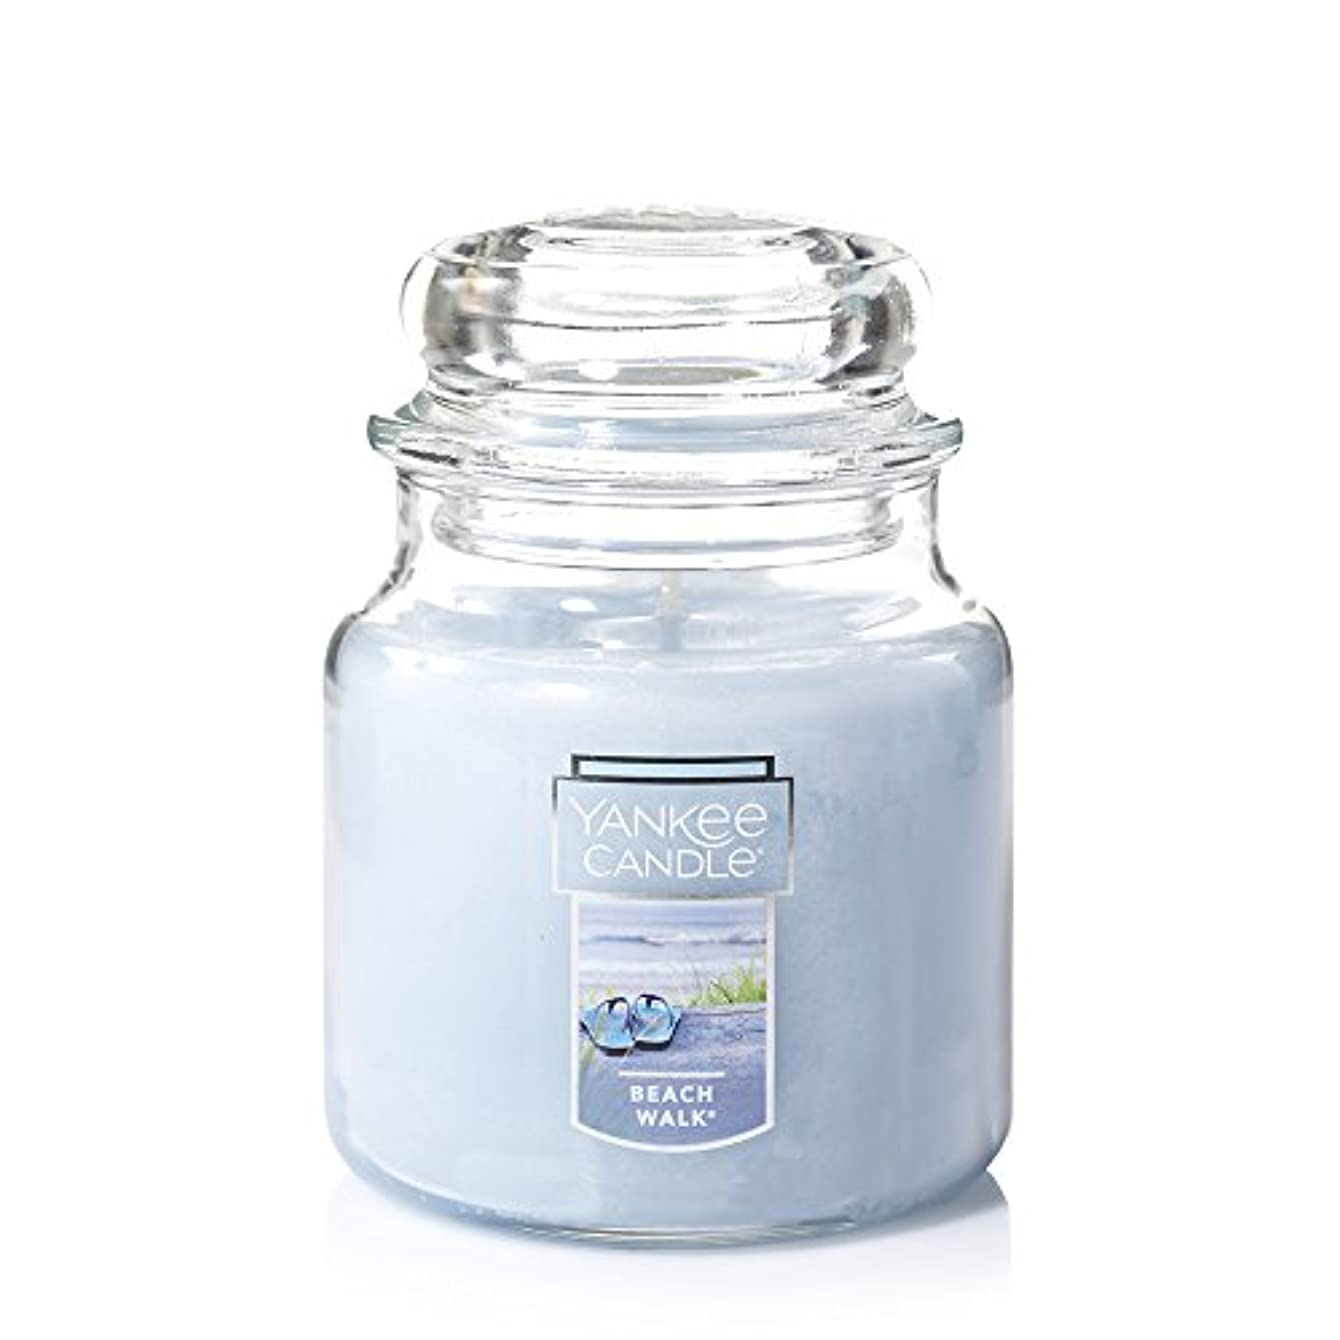 スモッグ理論翻訳Yankee Candle Beach Walk Large Jar 22oz Candle Small Jar Candles ブルー 1129793